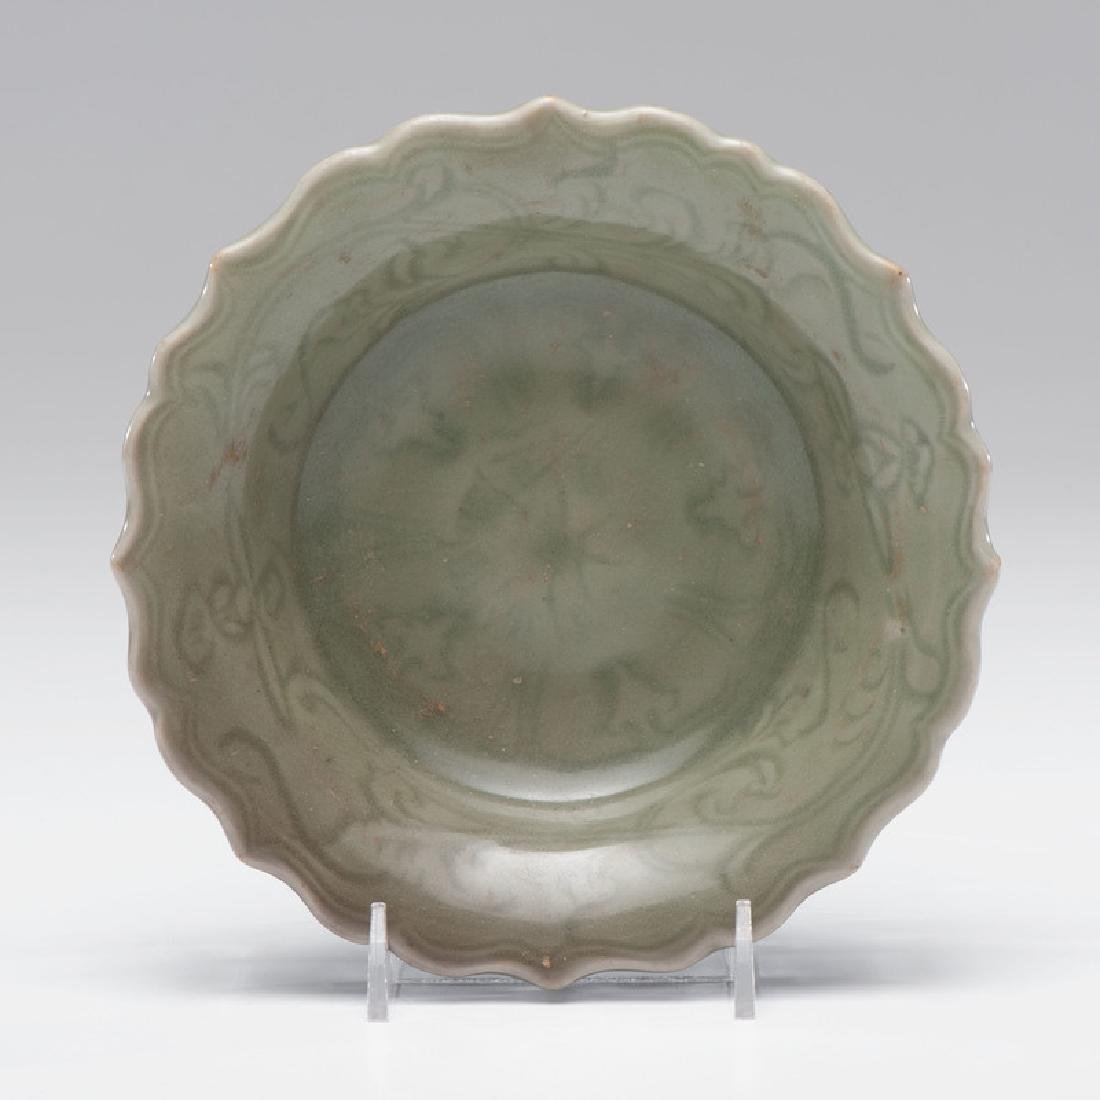 Celadon Plate with Scalloped Edge